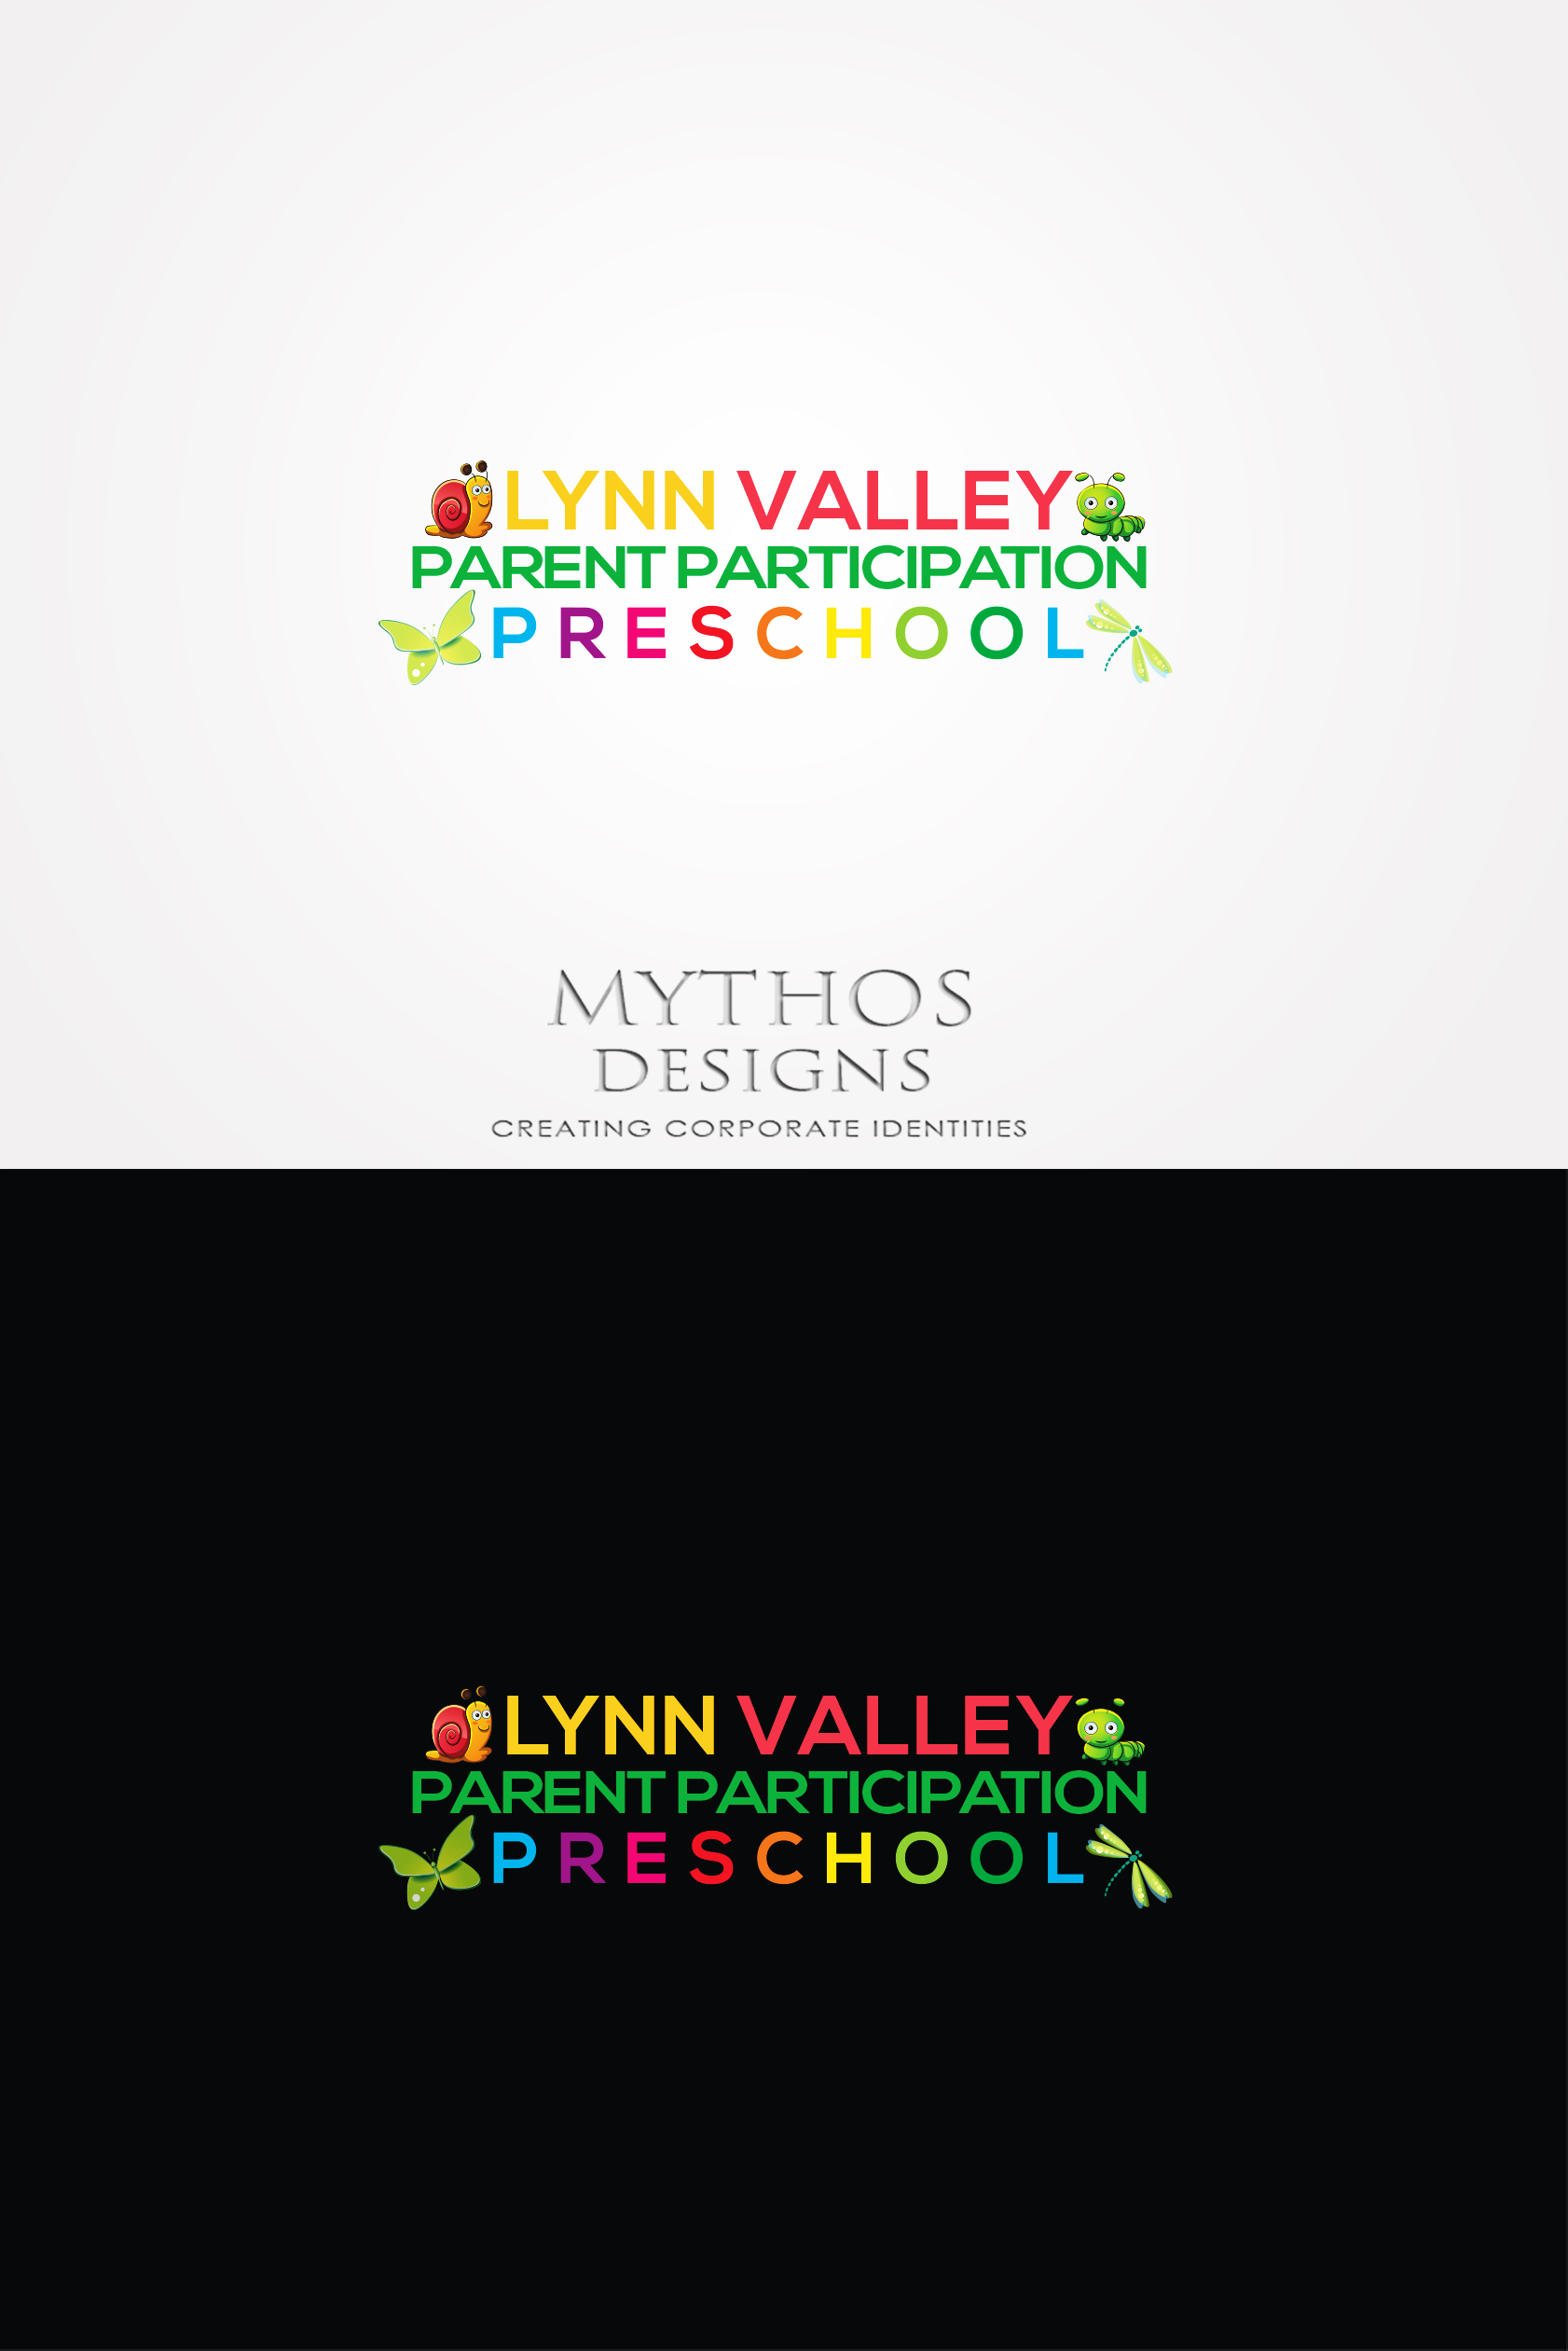 Logo Design by Mythos Designs - Entry No. 59 in the Logo Design Contest New Logo Design for Lynn Valley Parent Participation Preschool.